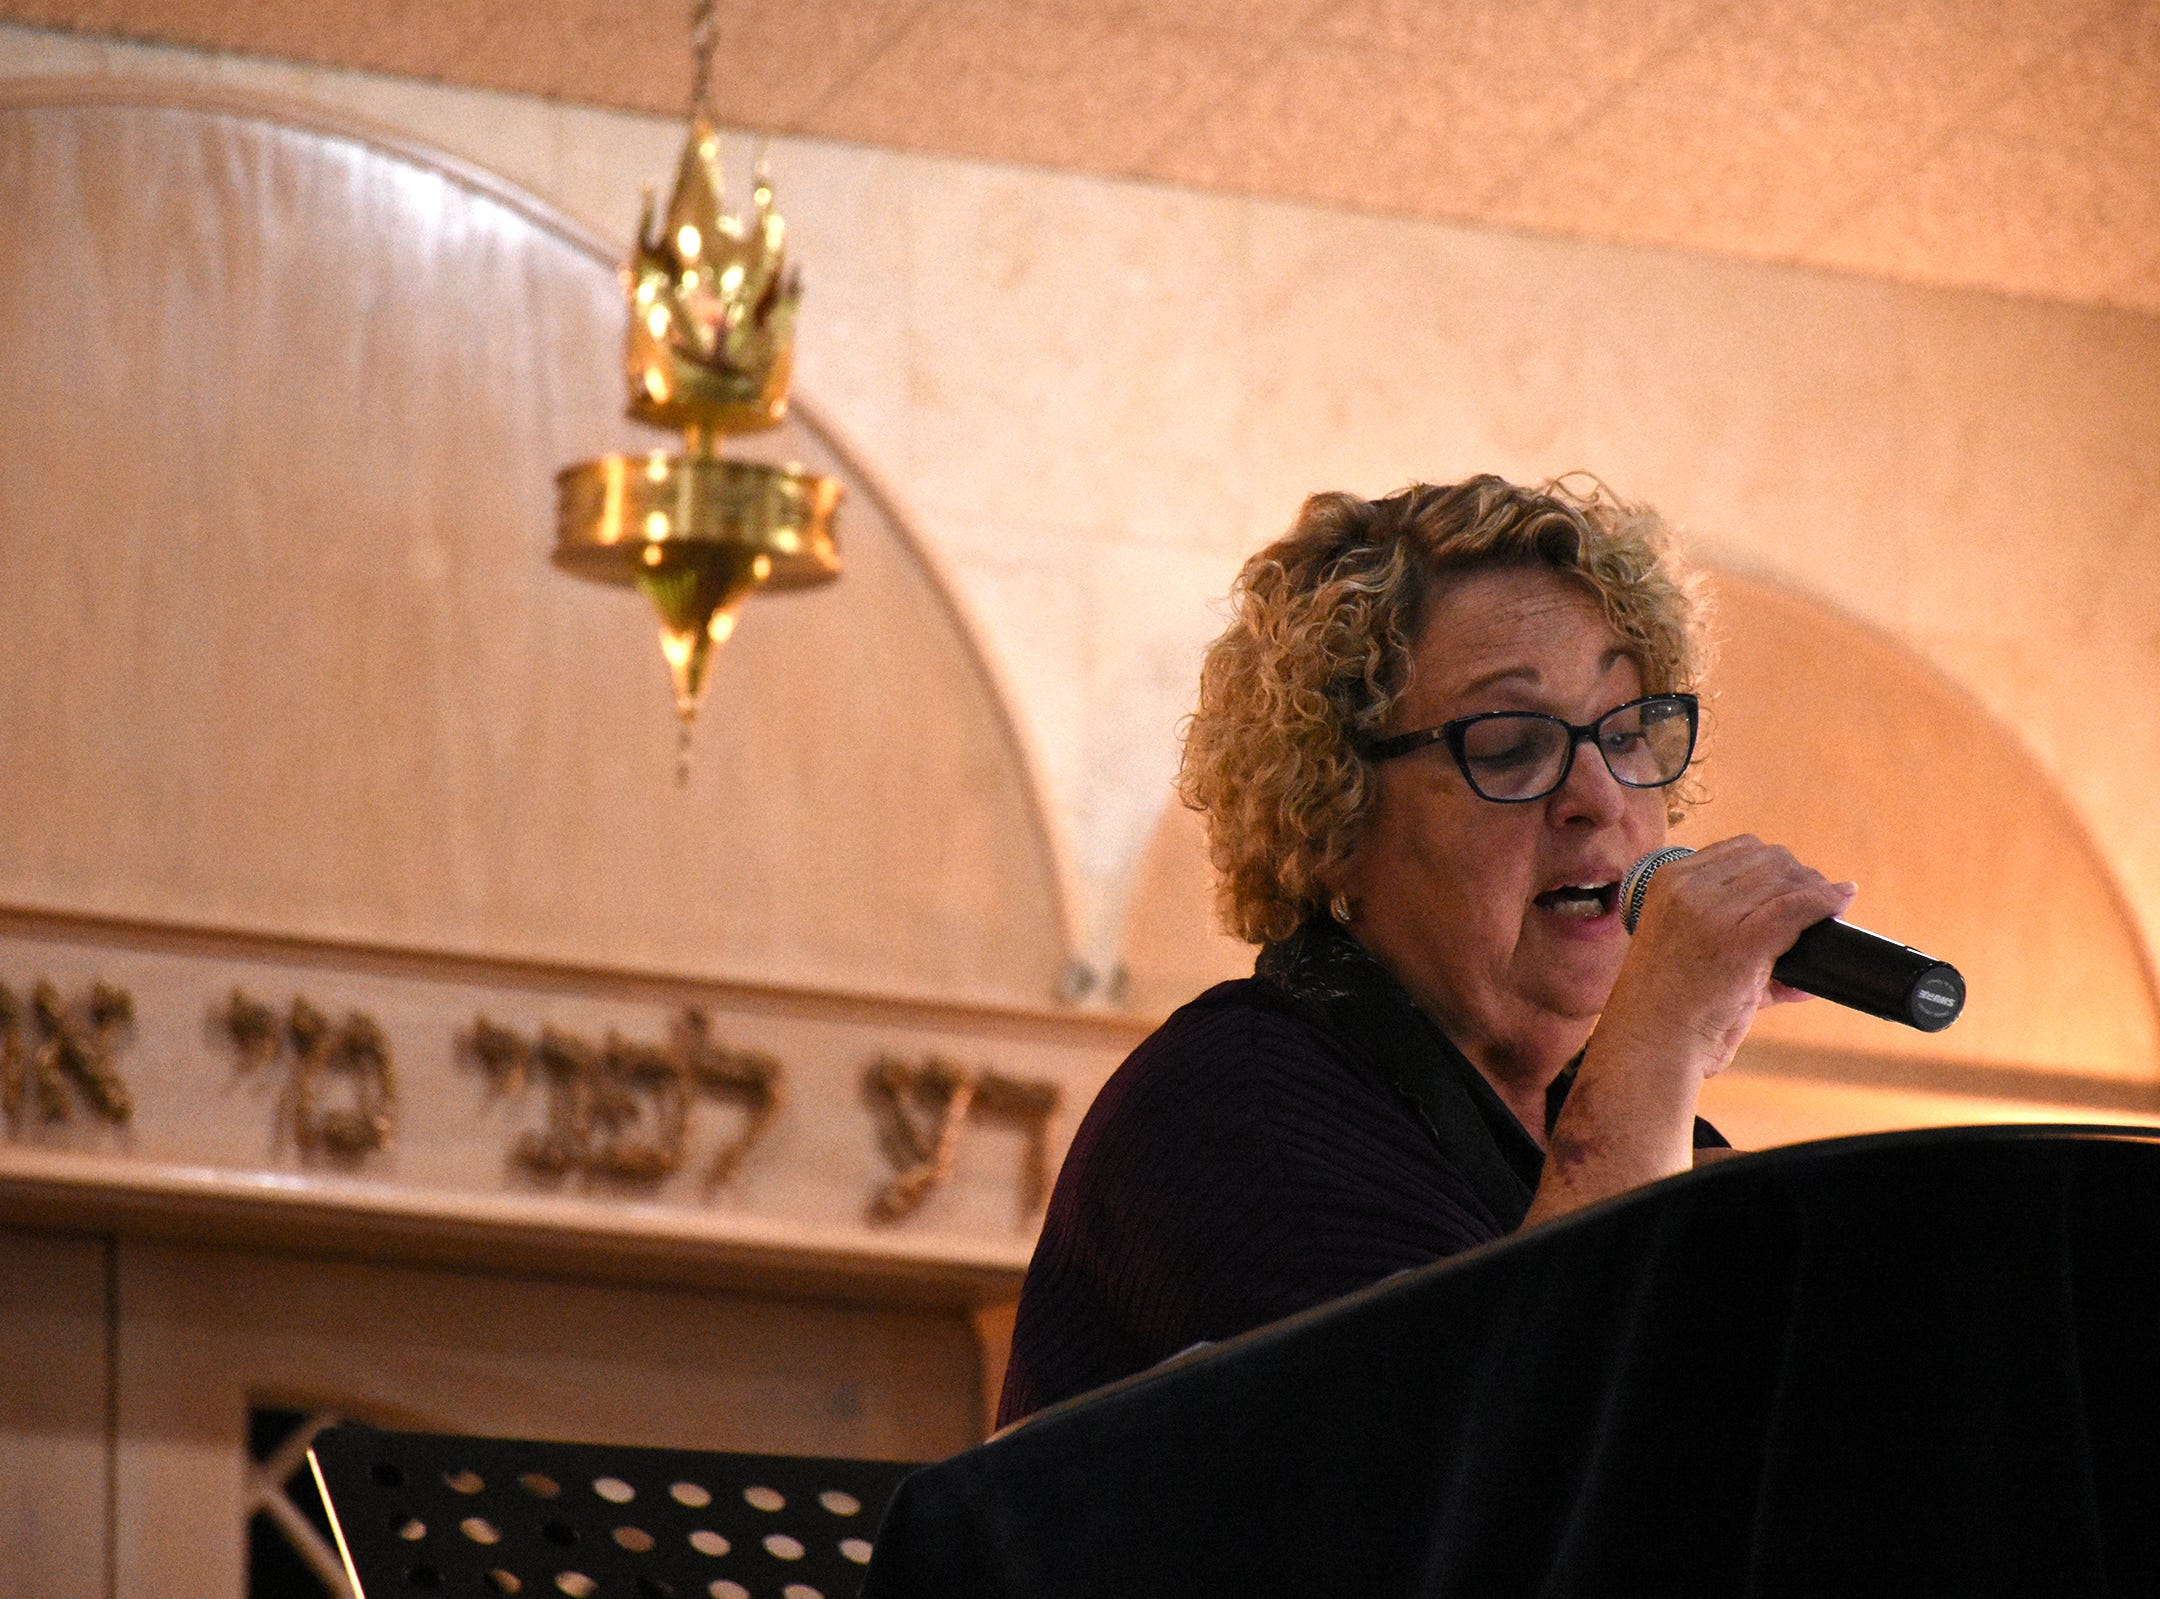 Cantorial soloist Hari Jacobsen sings Hebrew psalms. The Jewish Congregation of Marco Island held a Shabbat service Friday evening marking the 80th anniversary of Kristallnacht, when Nazi Germany brought perseution of Jews out into the open.